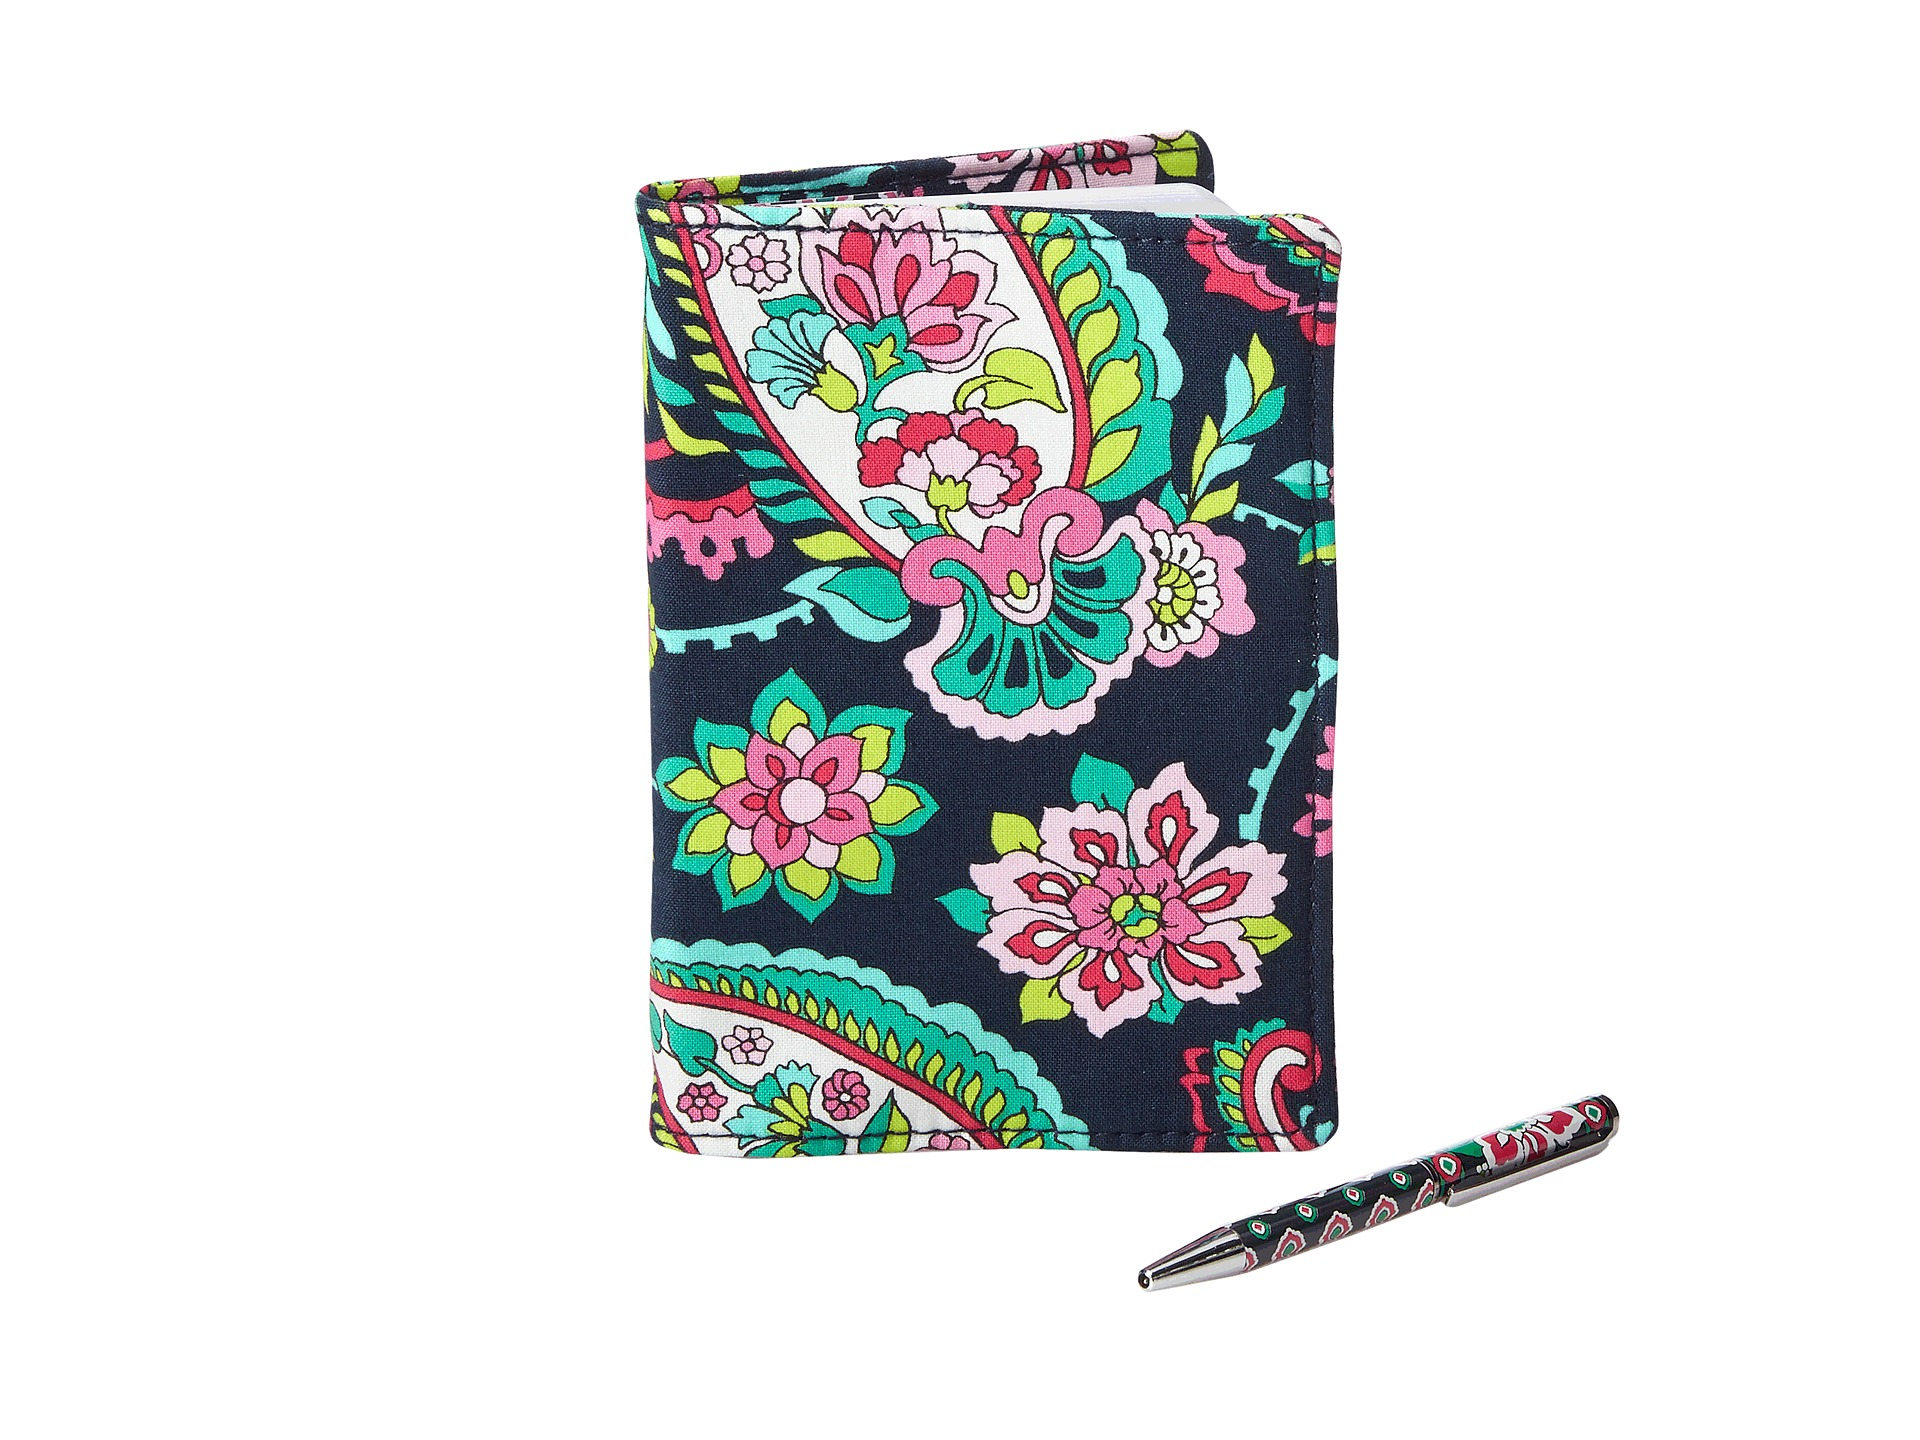 084e41ef74 Monogram Tote Bags  Vera Bradley Journal